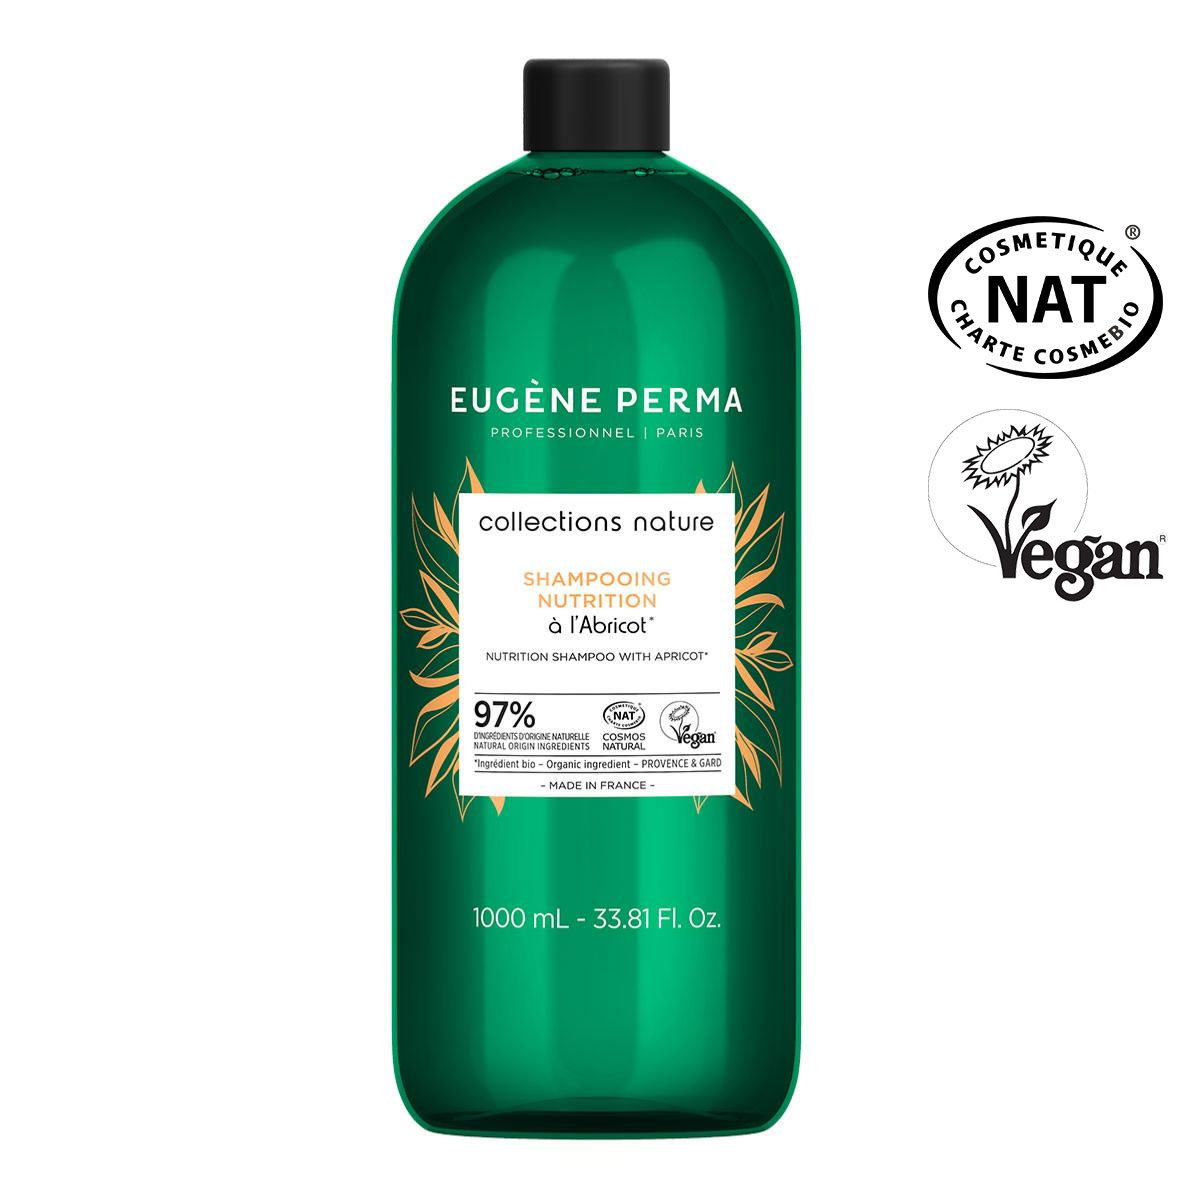 Shampooing Nutrition Abricot Collections Nature Eugène Perma 1000ml